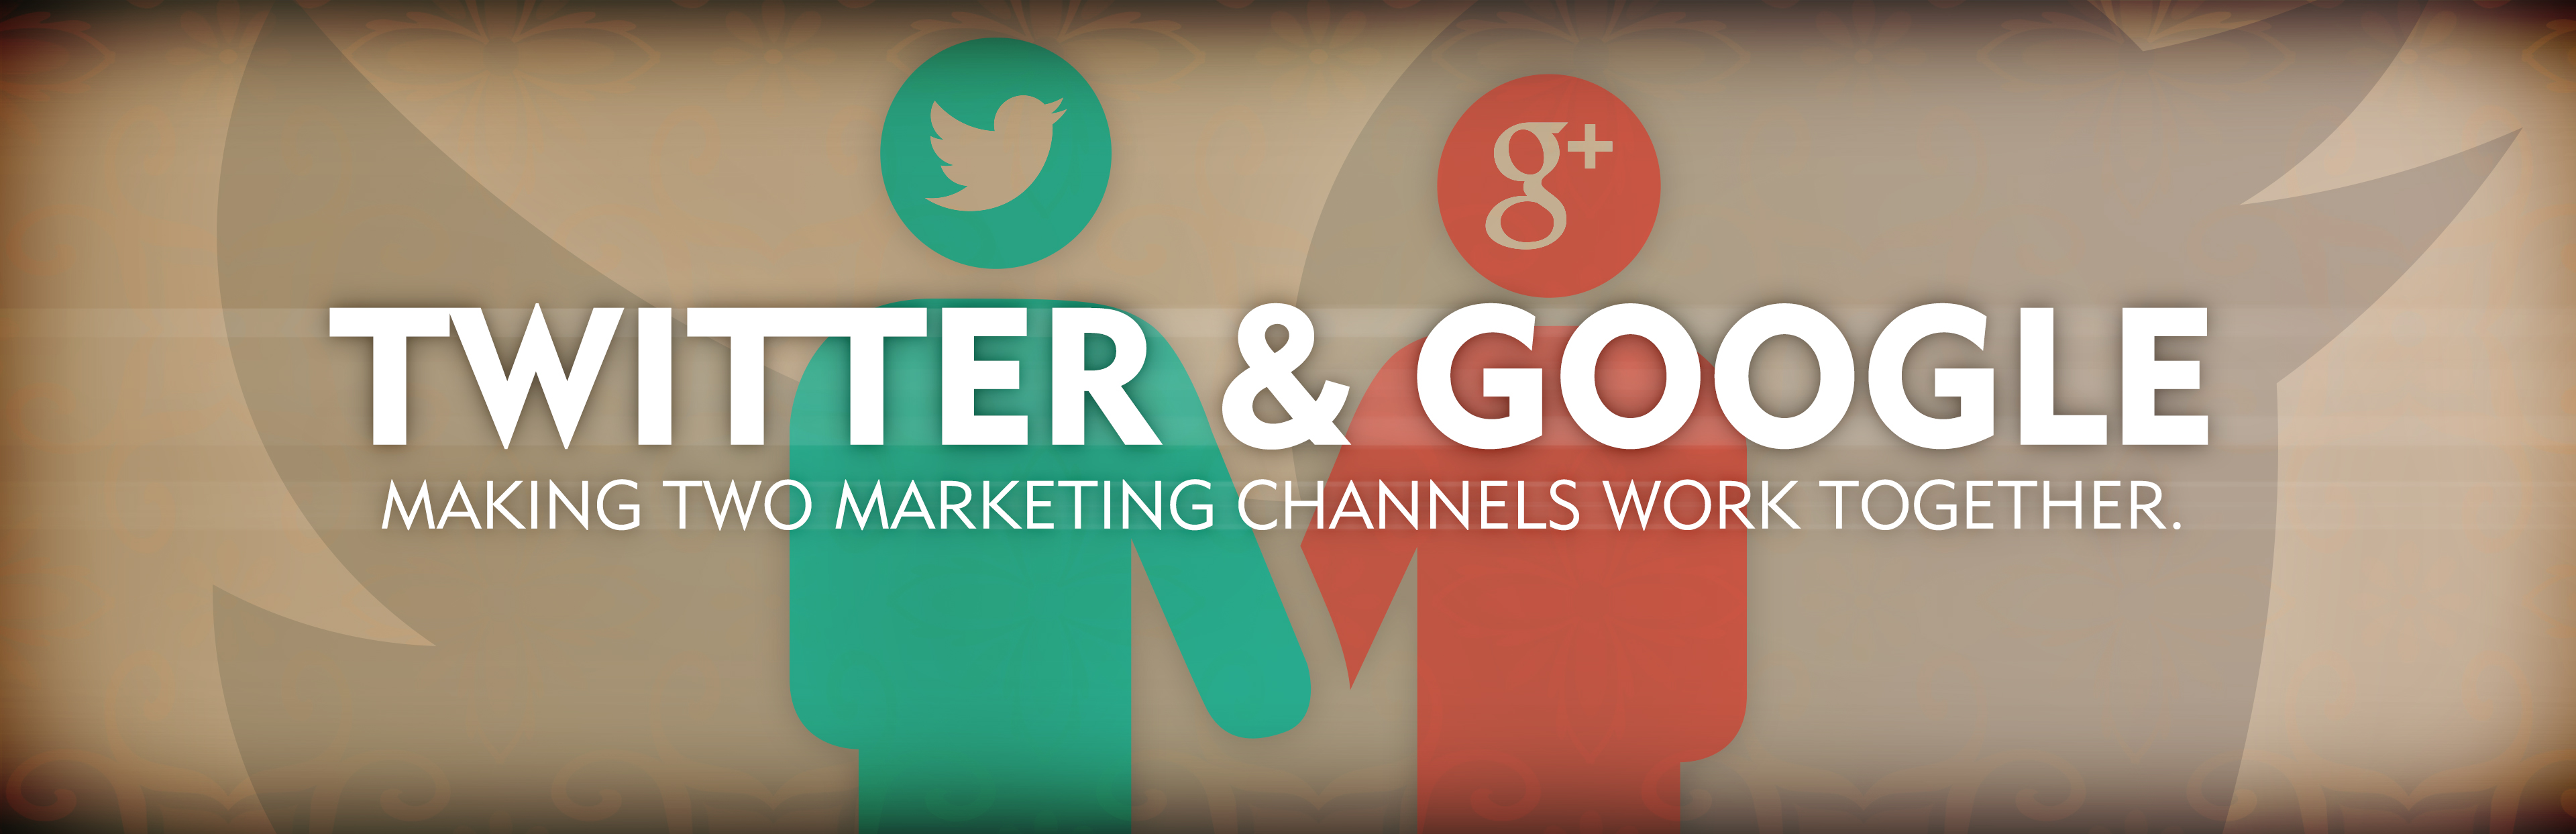 Google & Twitter: Making Two Marketing Channels Work Together